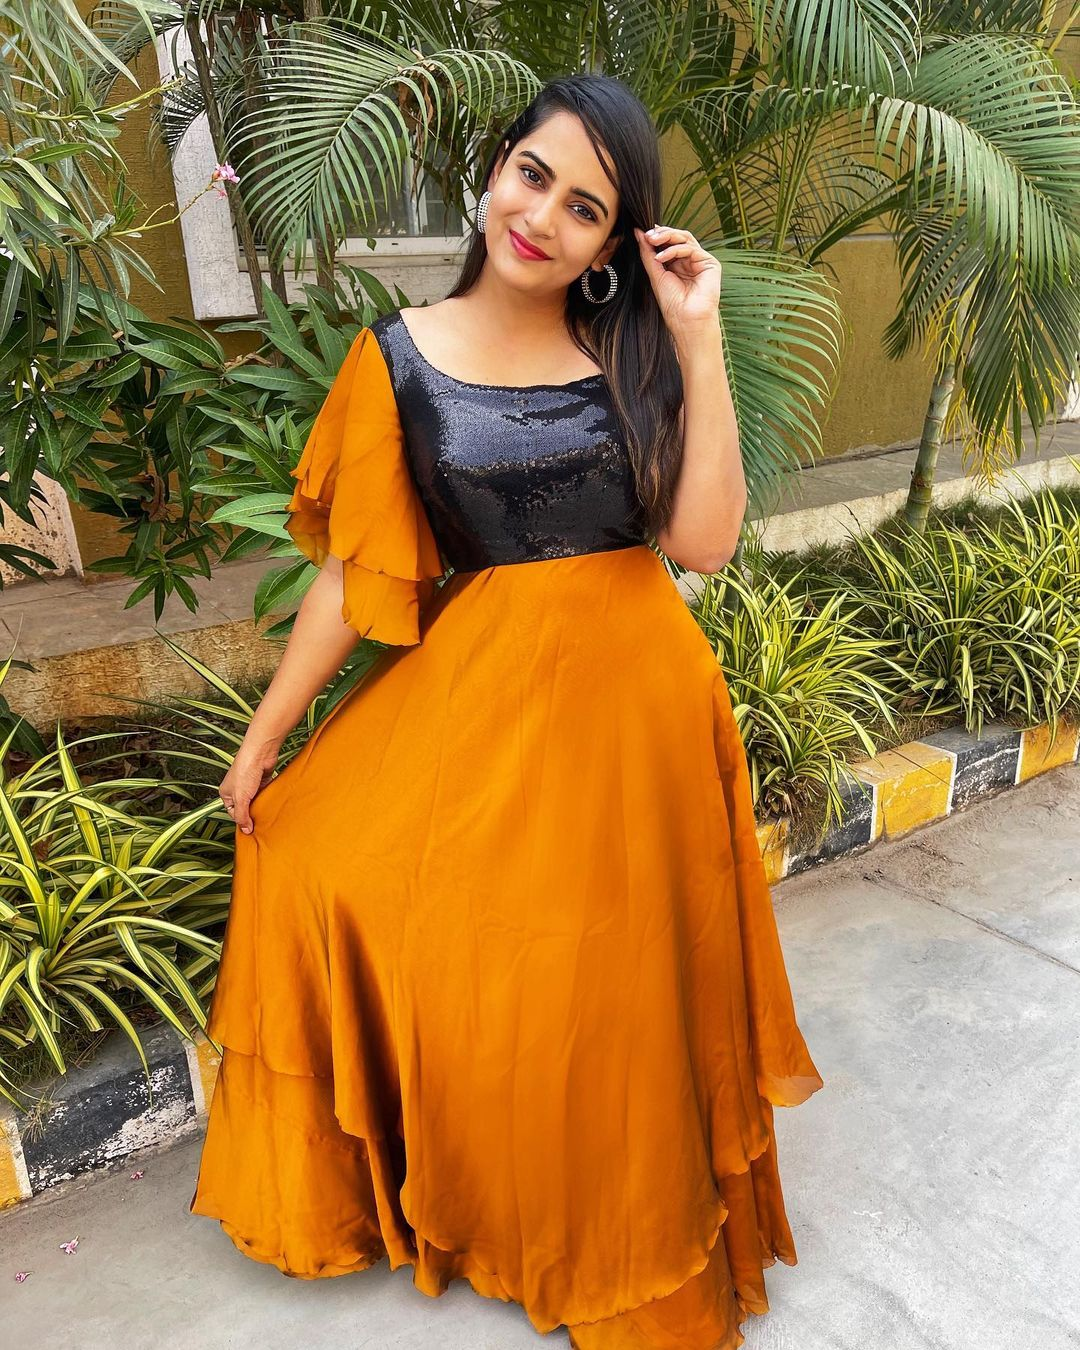 Beautiful actress Himaja in Mustard yellow and black color combination floor length dress with ruffle sleeves. 2021-04-27